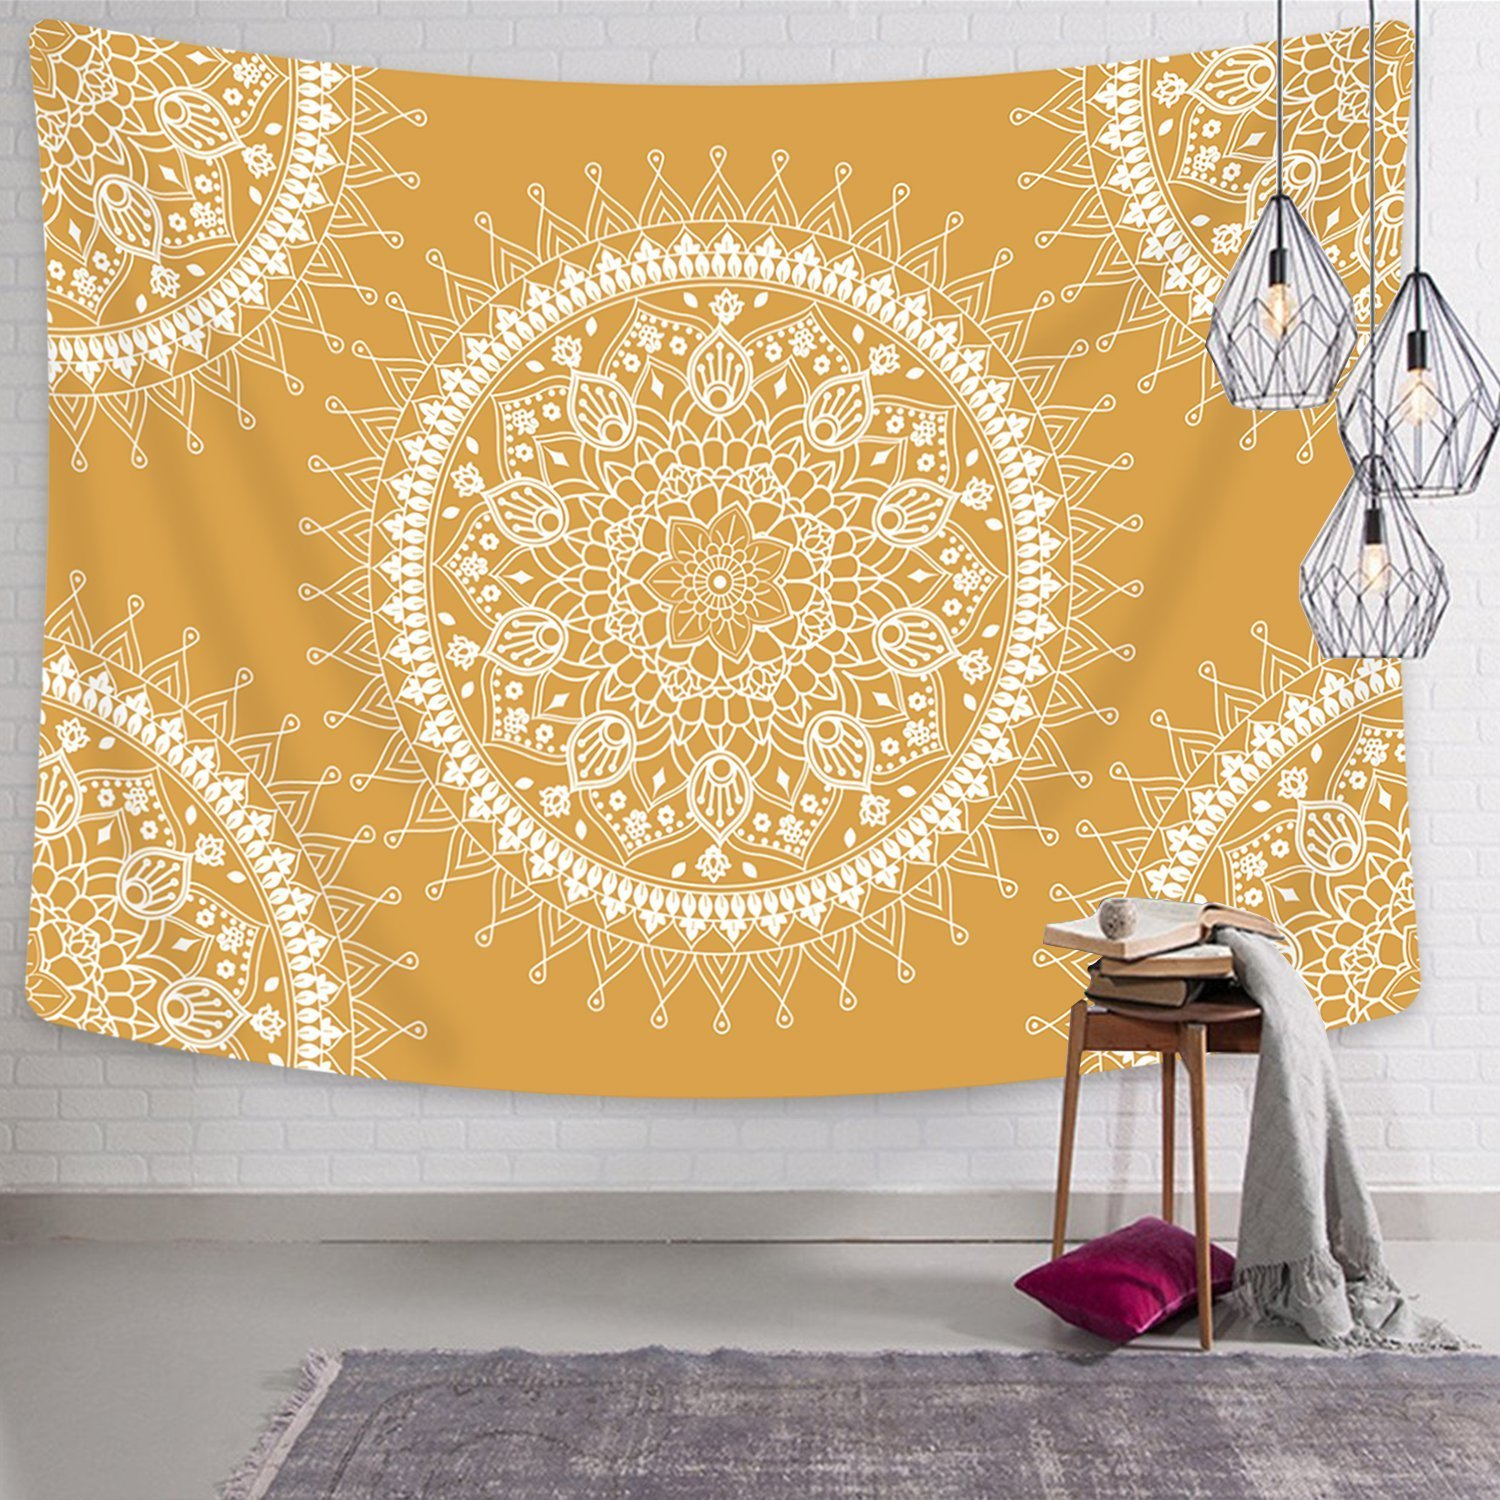 Amazon.com: Tapestry Wall Hanging Wall Tapestry Hippie Galaxy ...